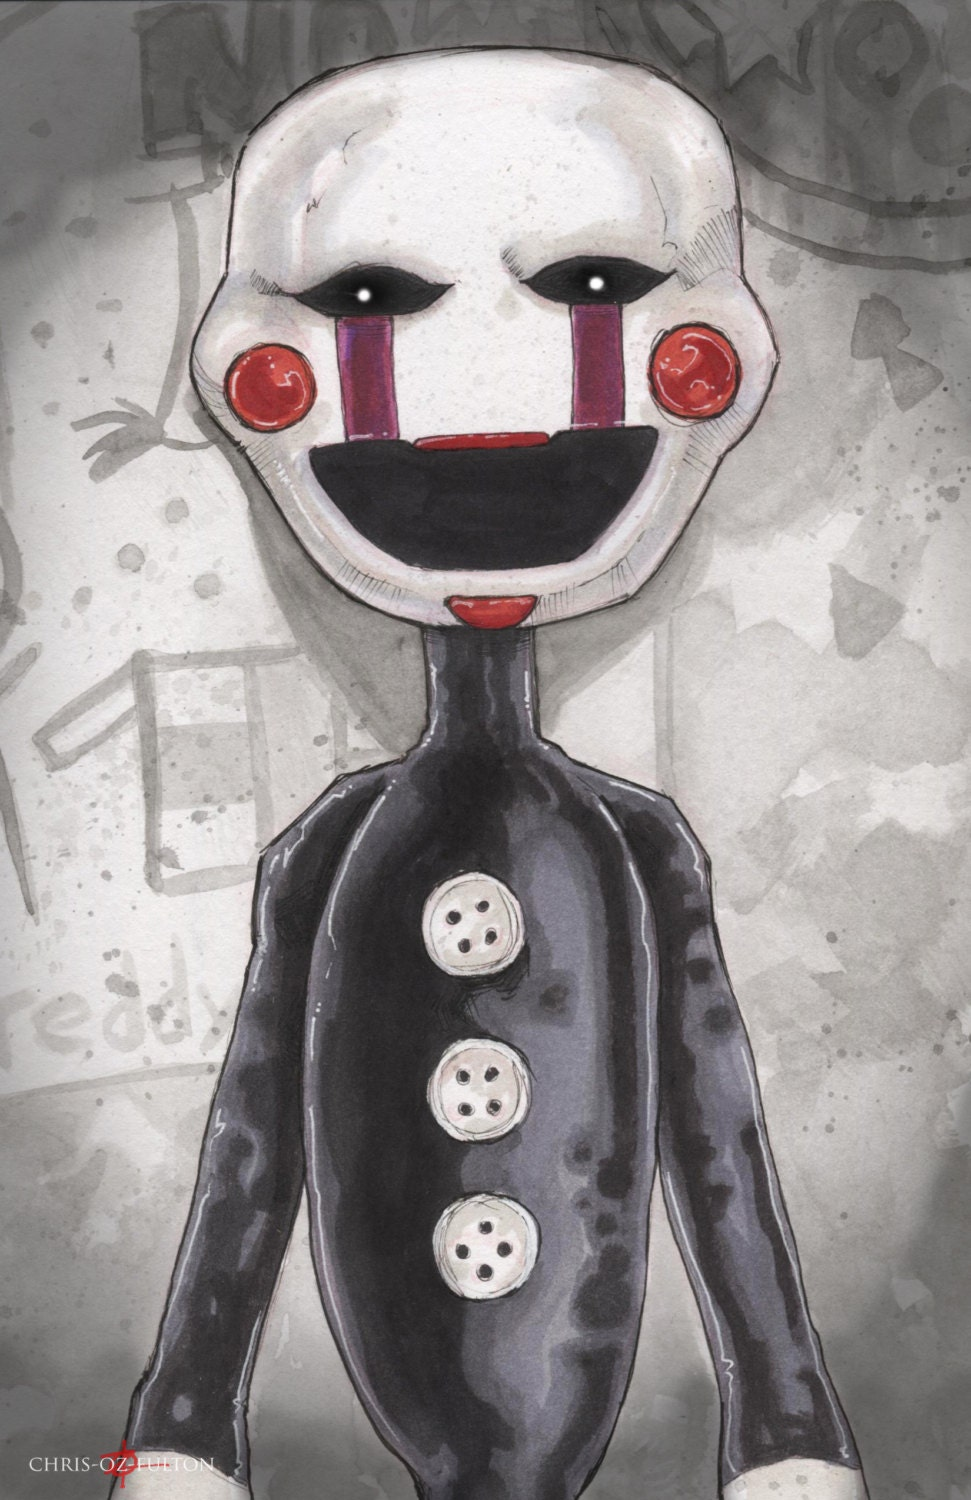 Five Nights At Freddy S Bedroom Decor: Five Nights At Freddy's Marionette Poster Print